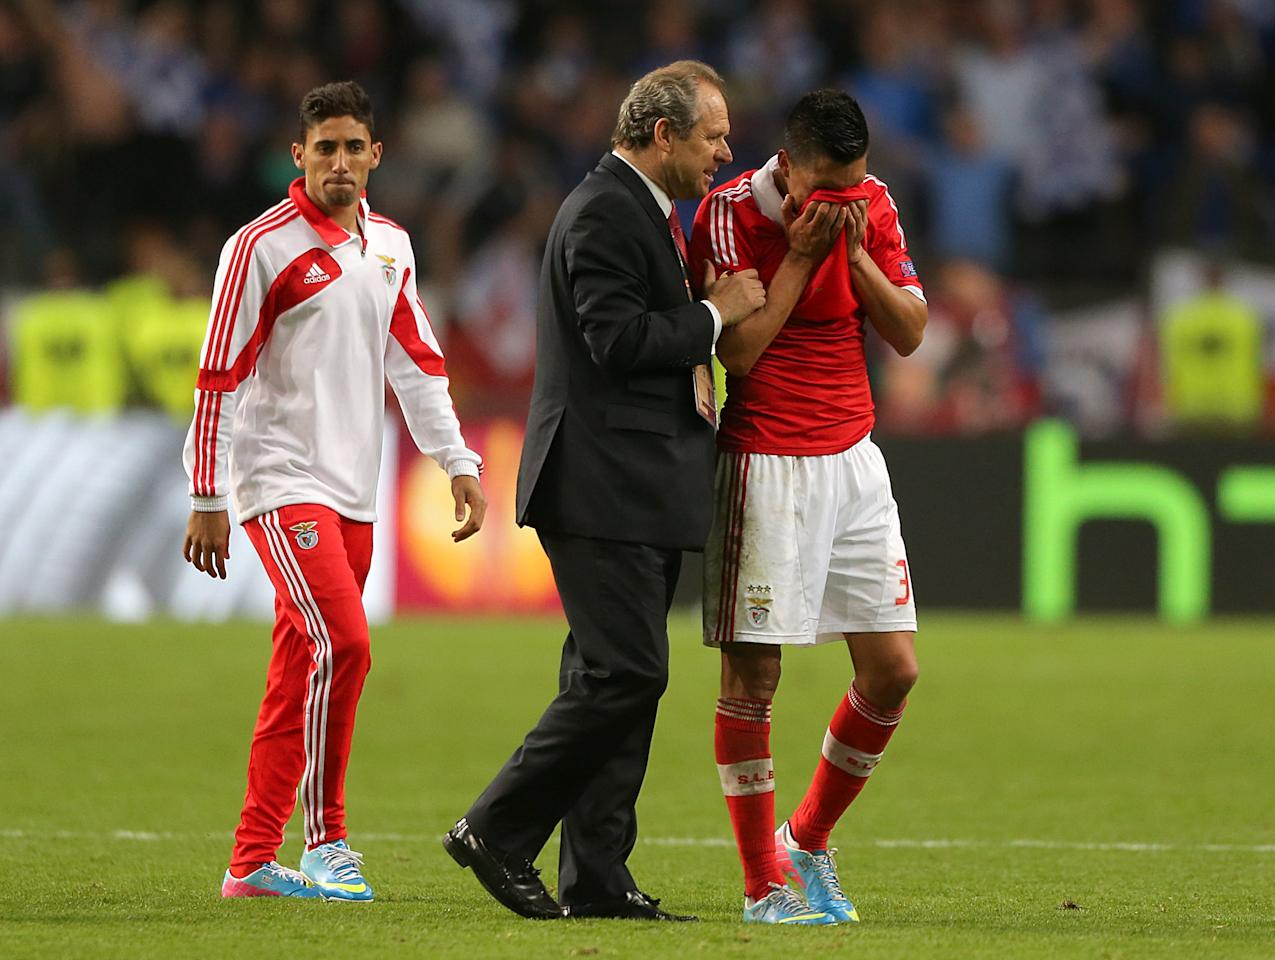 Benfica's Enzo Perez (right) looks dejected after the game